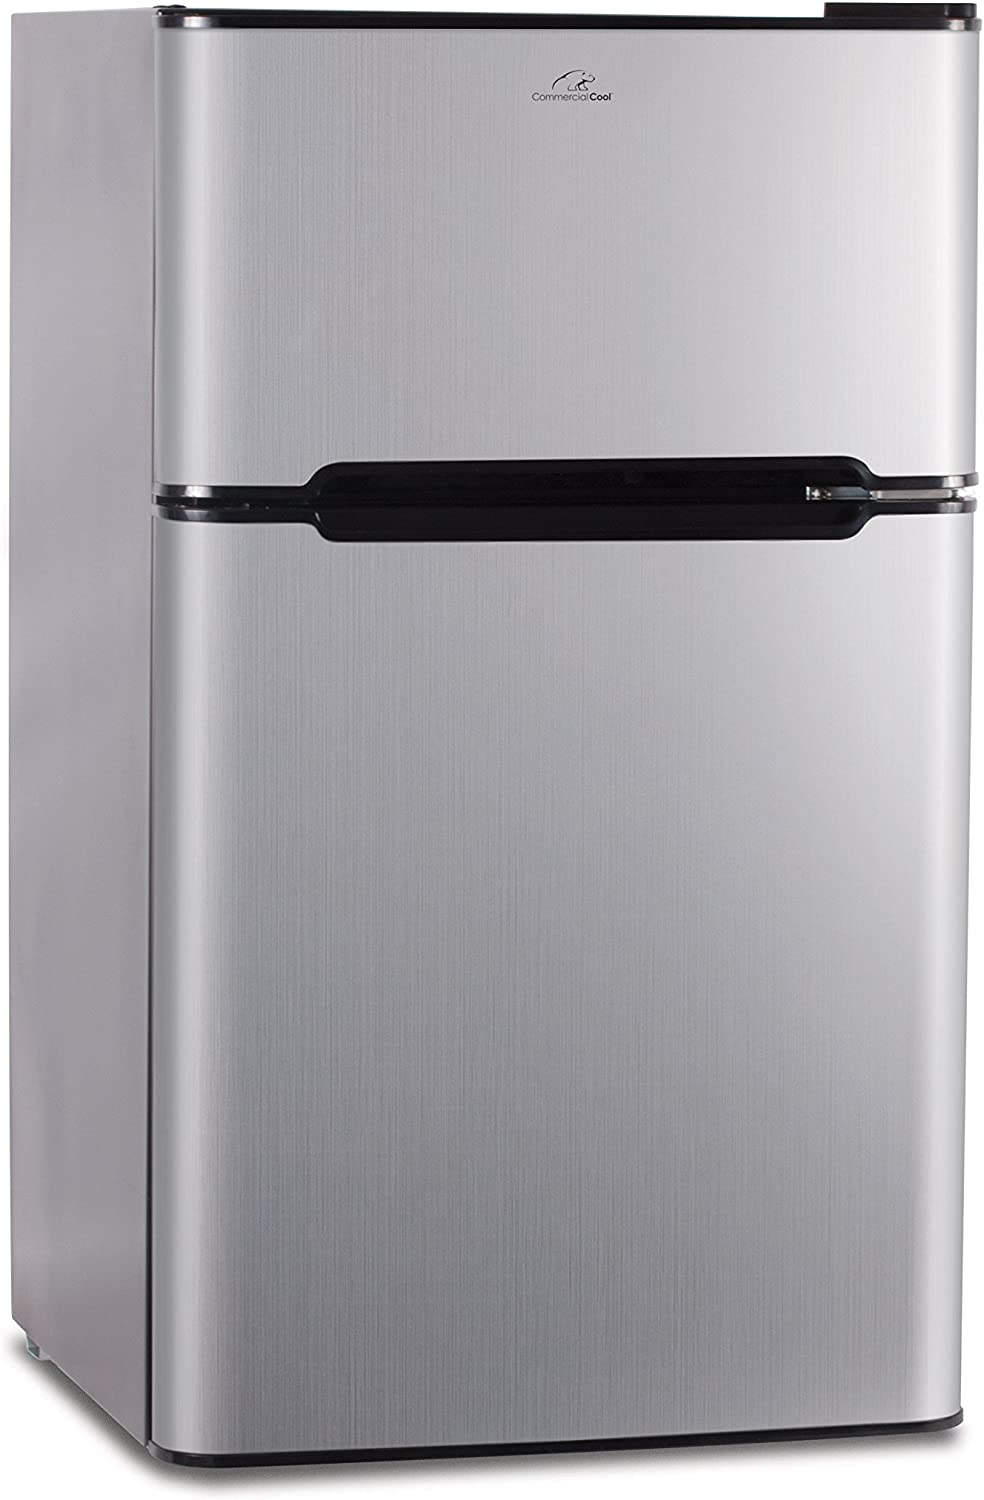 Commercial Cool CCRD32V 3.2 Cu.Ft. Fridge 40% OFF Cheap Sale Compact Door wi Double Max 90% OFF